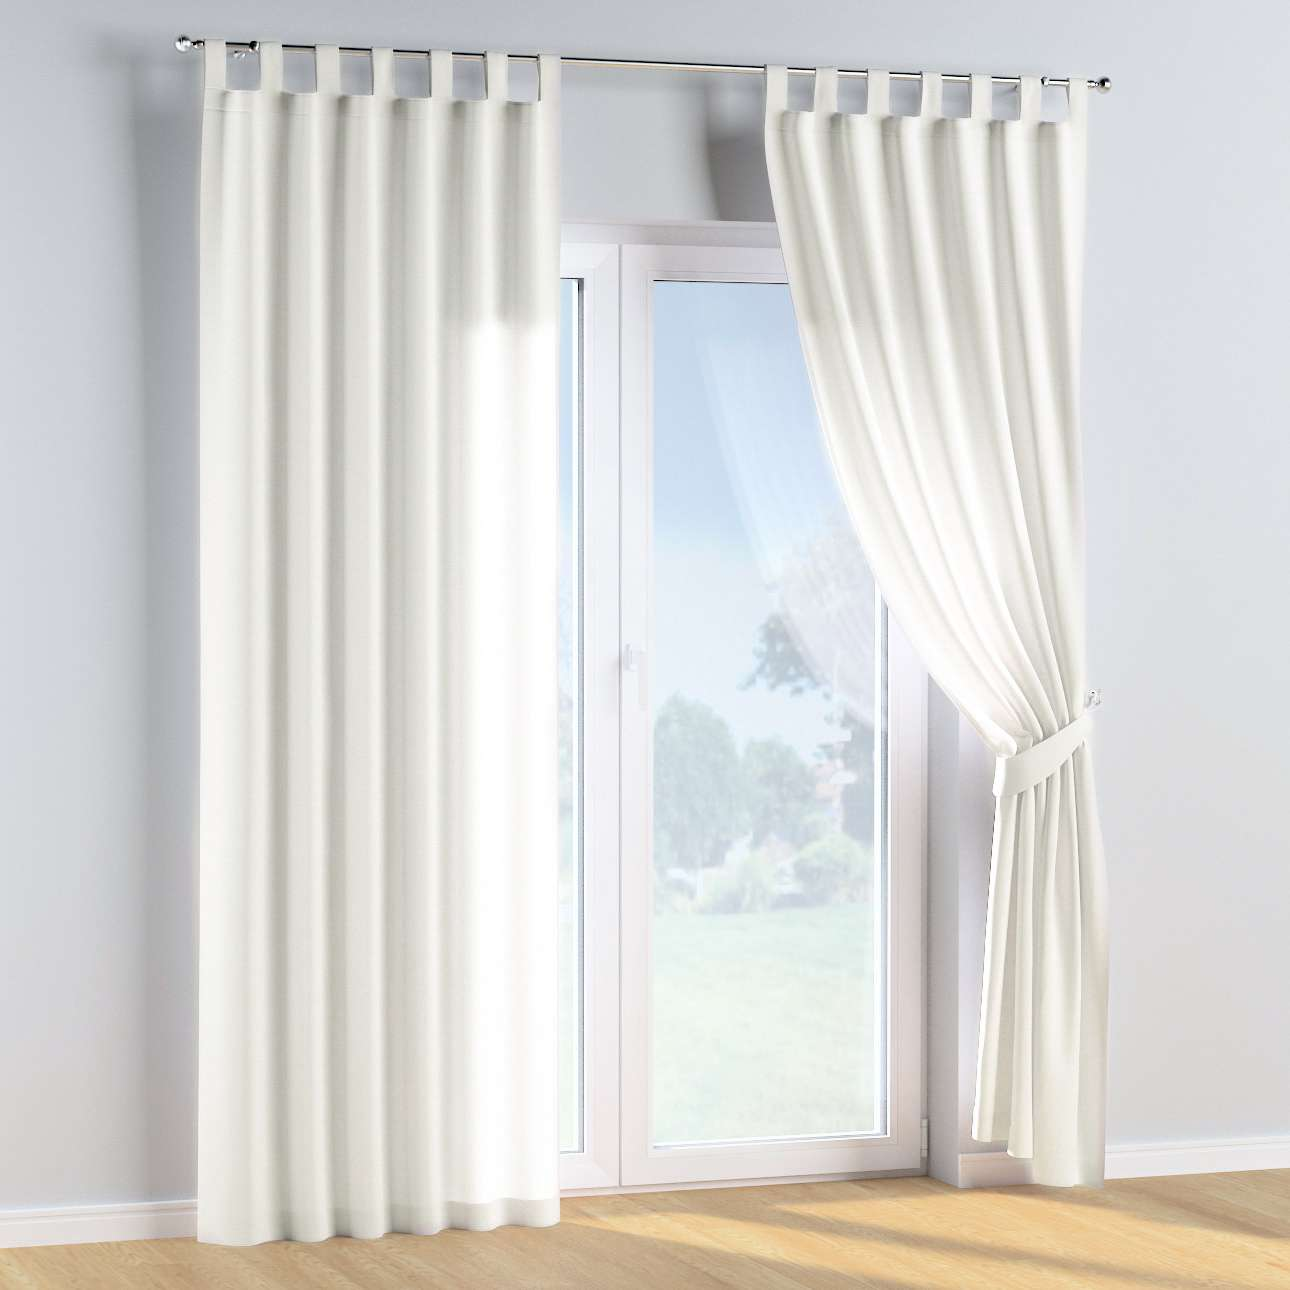 Tab top curtains in collection Cotton Story, fabric: 702-34